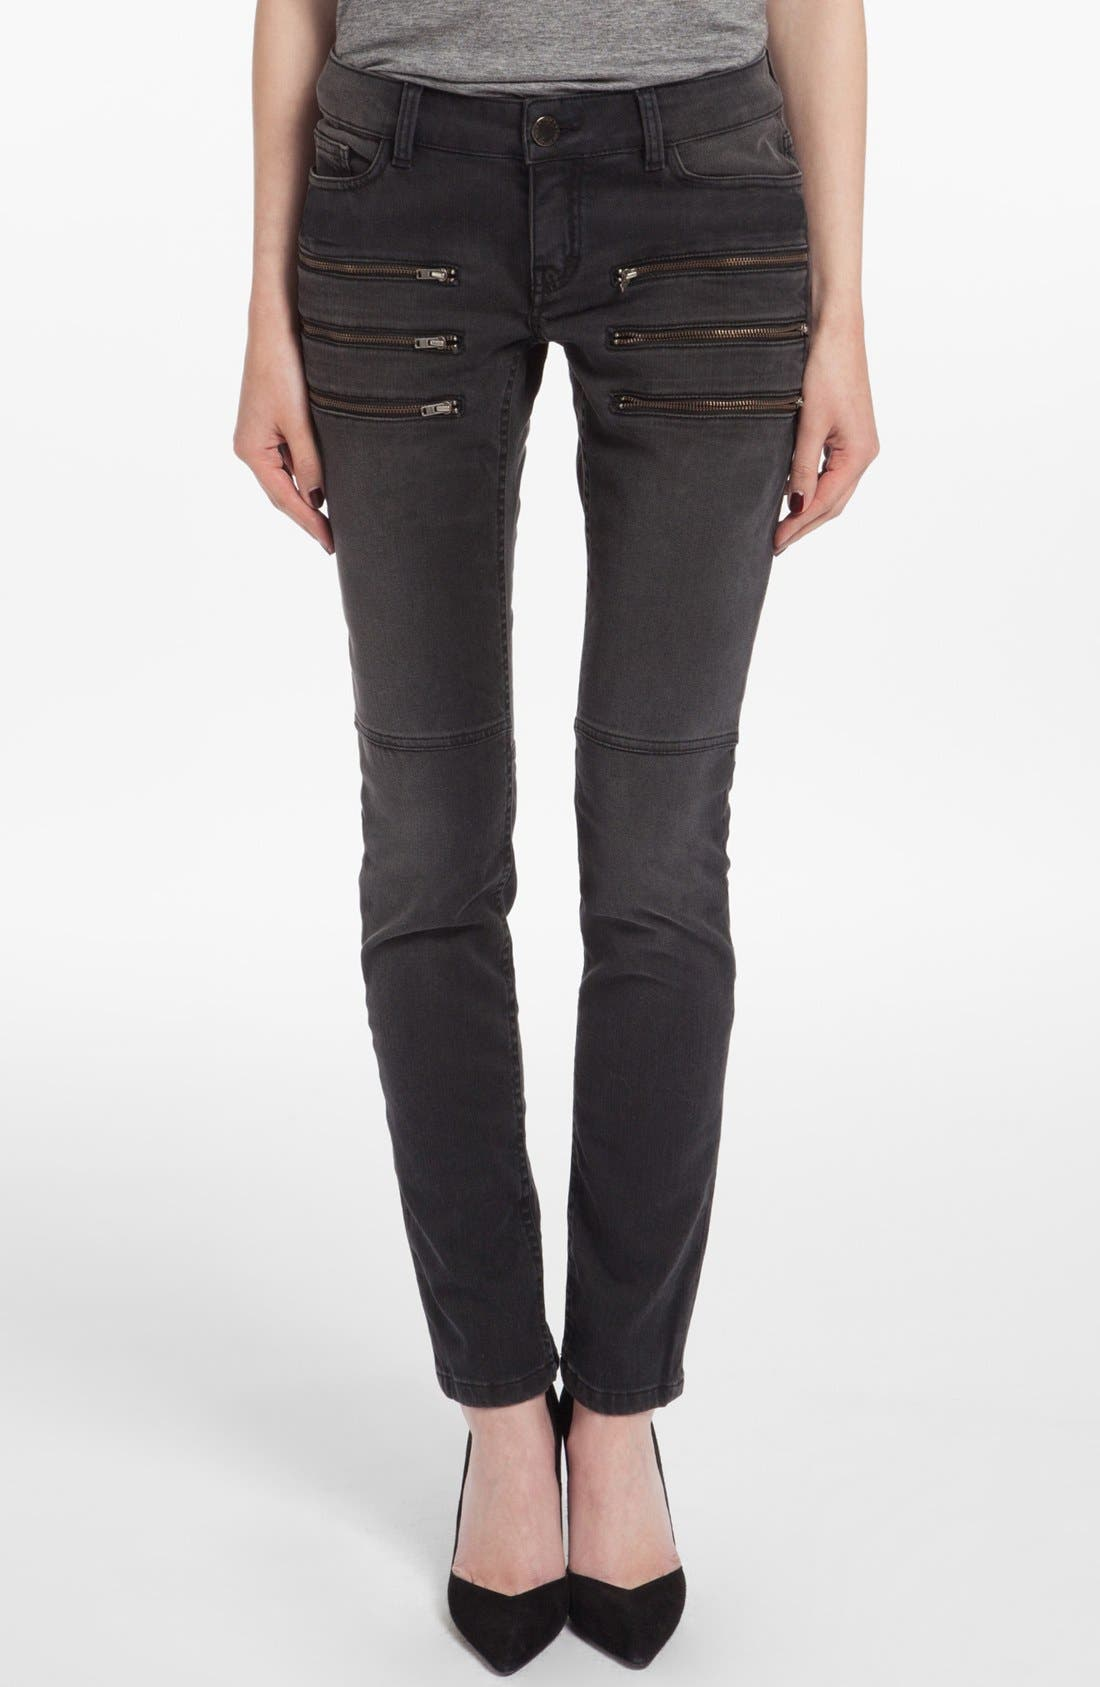 Alternate Image 1 Selected - maje 'Dip' Colored Skinny Jeans (Noir)